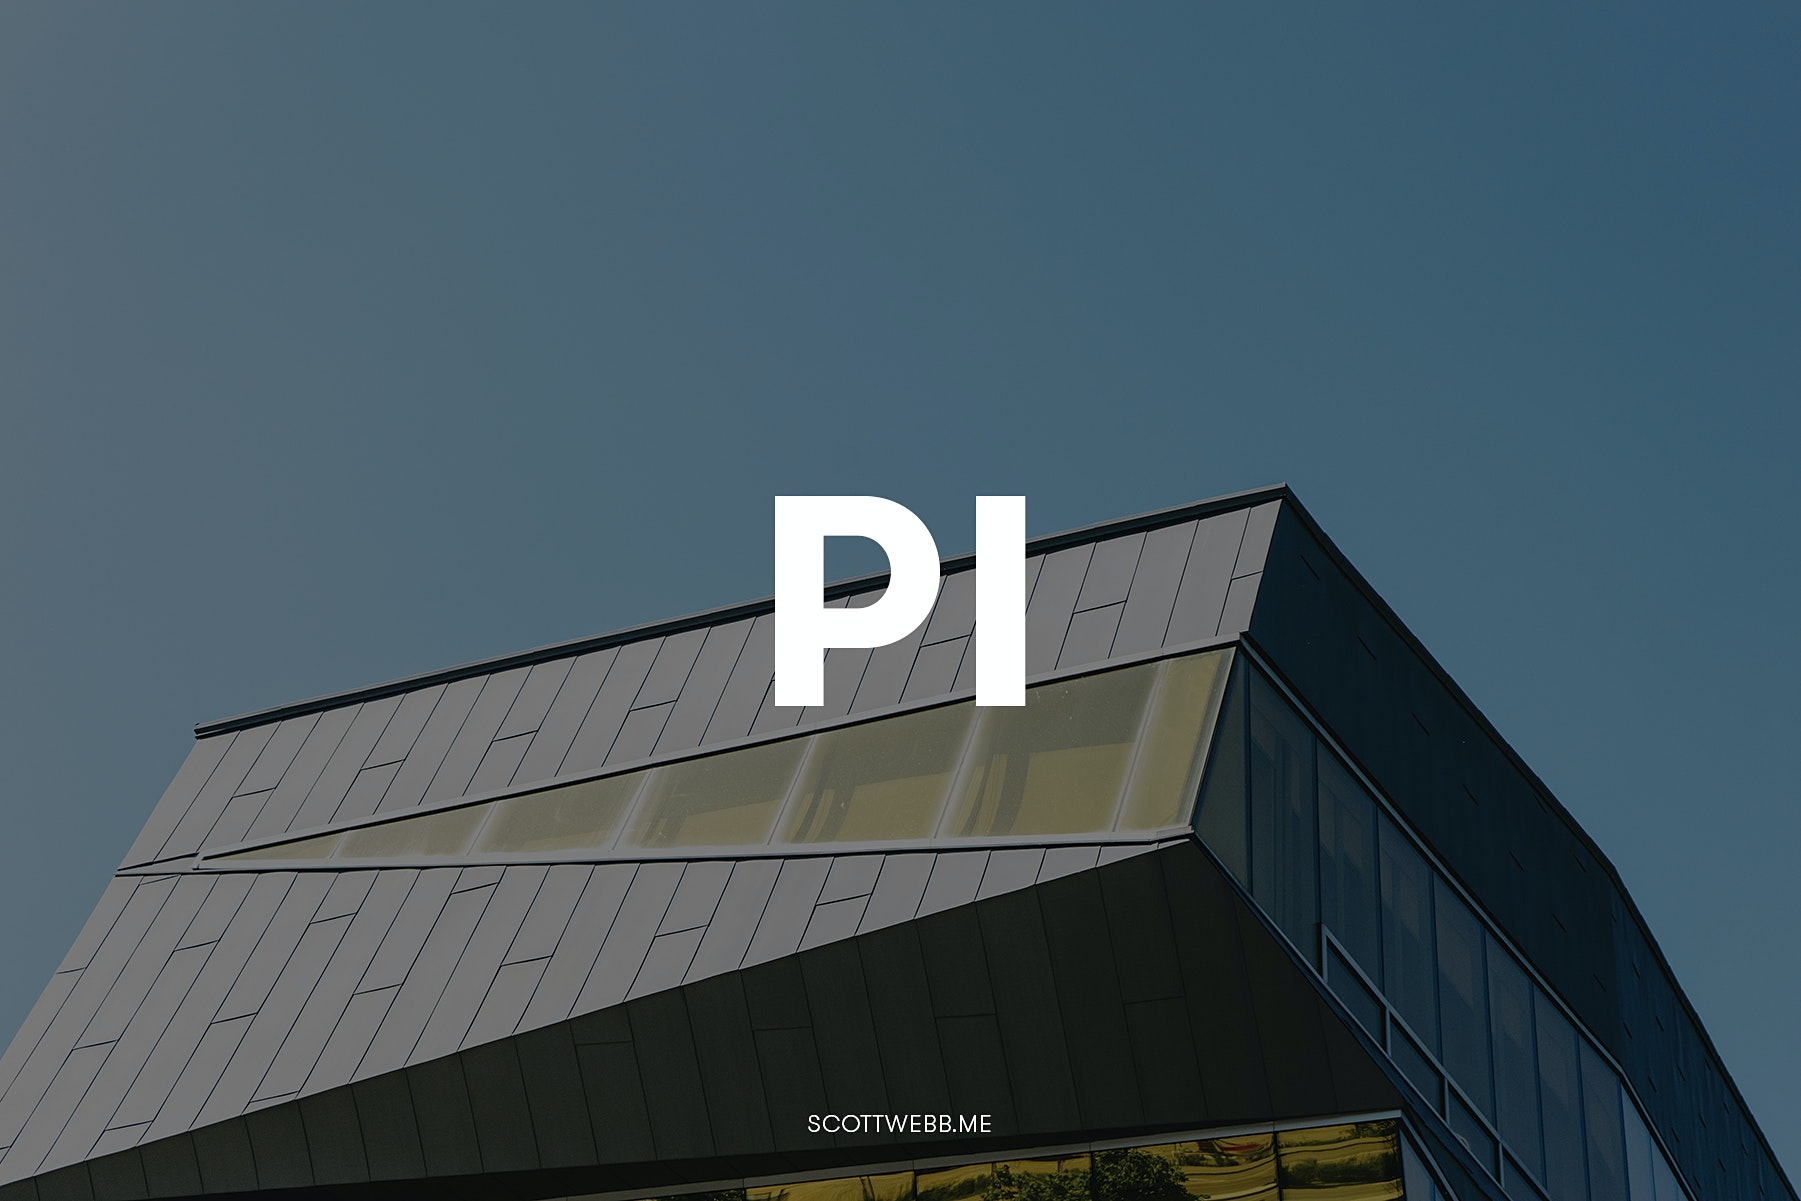 9 architectural photos exploring the Perimeter Institute for Theoretical Physics by Scott Webb